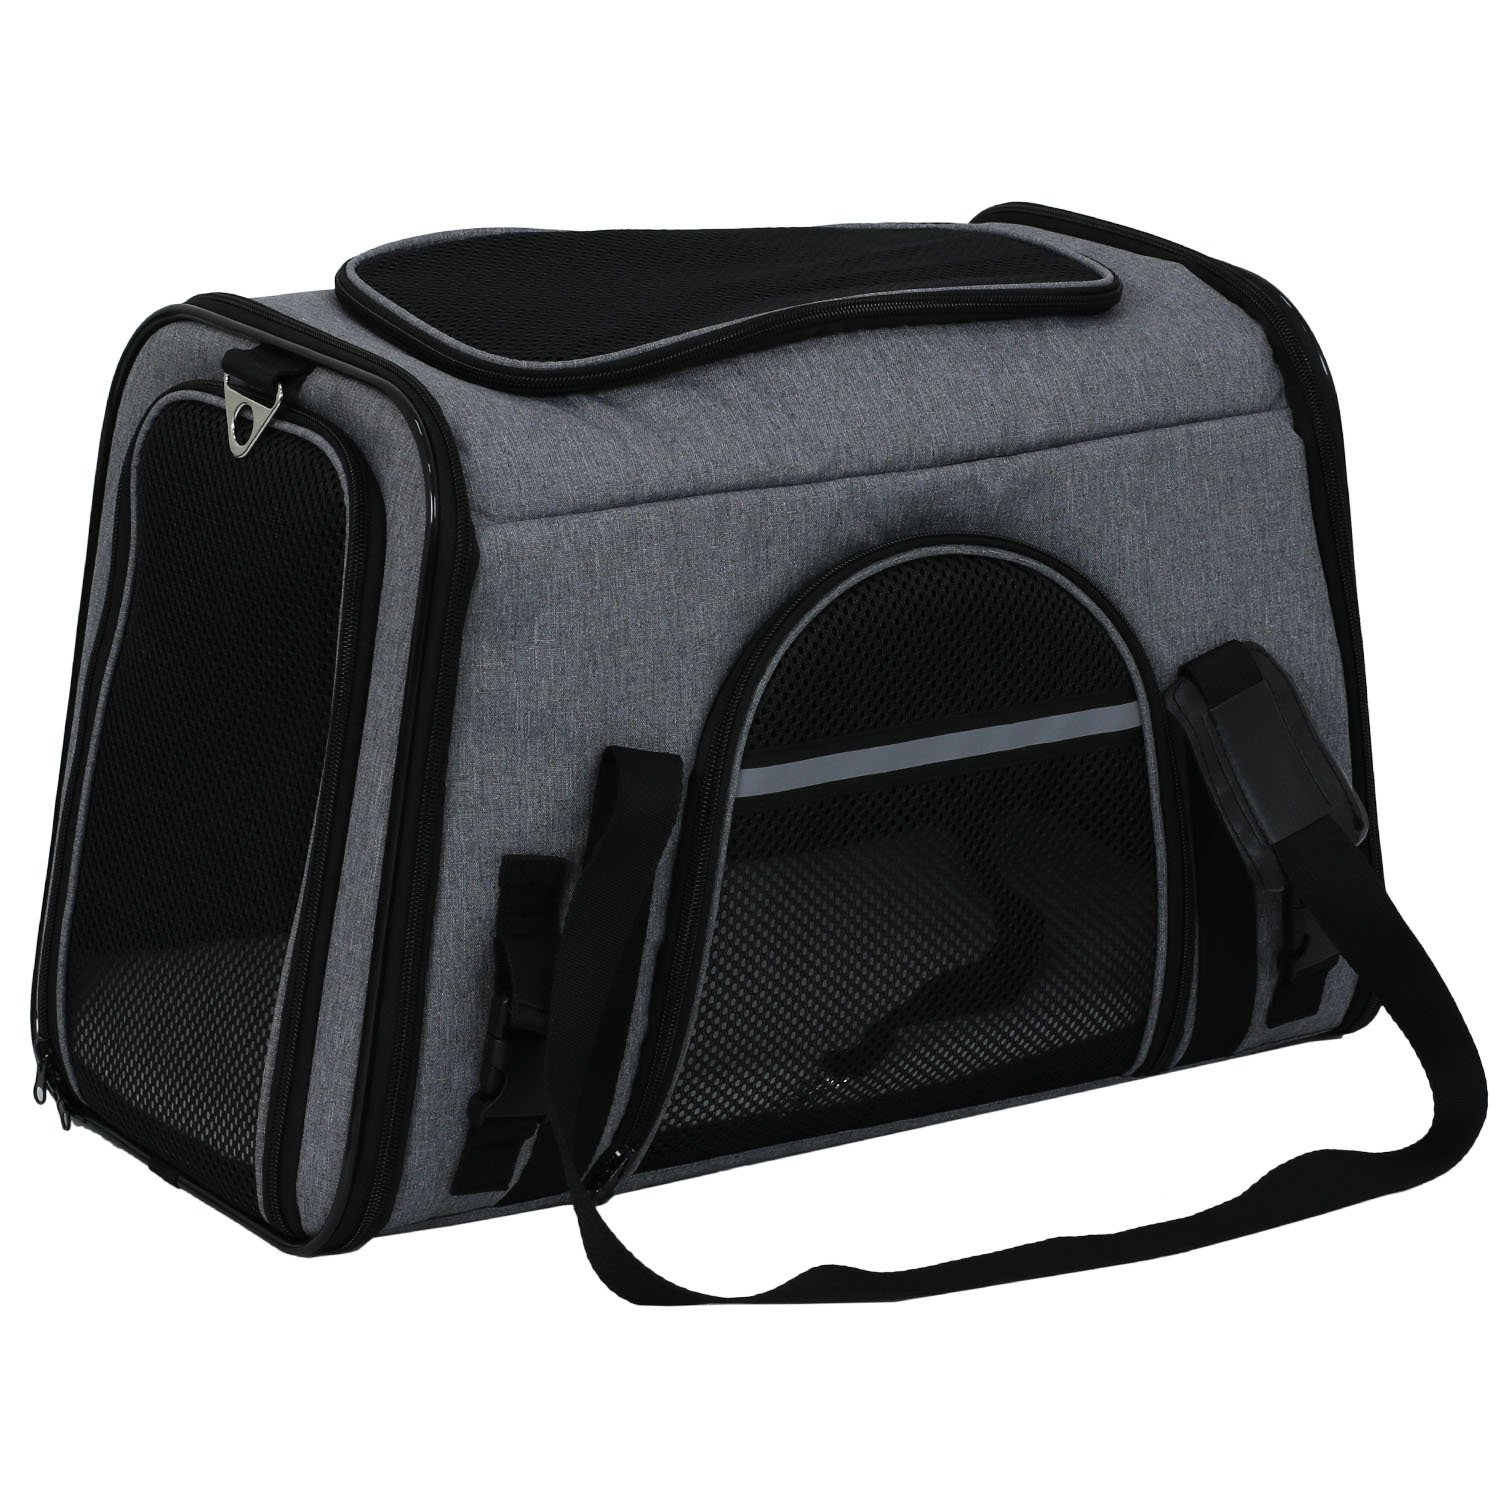 X-ZONE PET Airline Approved Pet Carriers,Comes with Fleece Pads Soft Sided Pet Carrier for Dog & Cat (Large, Charcoal gray)